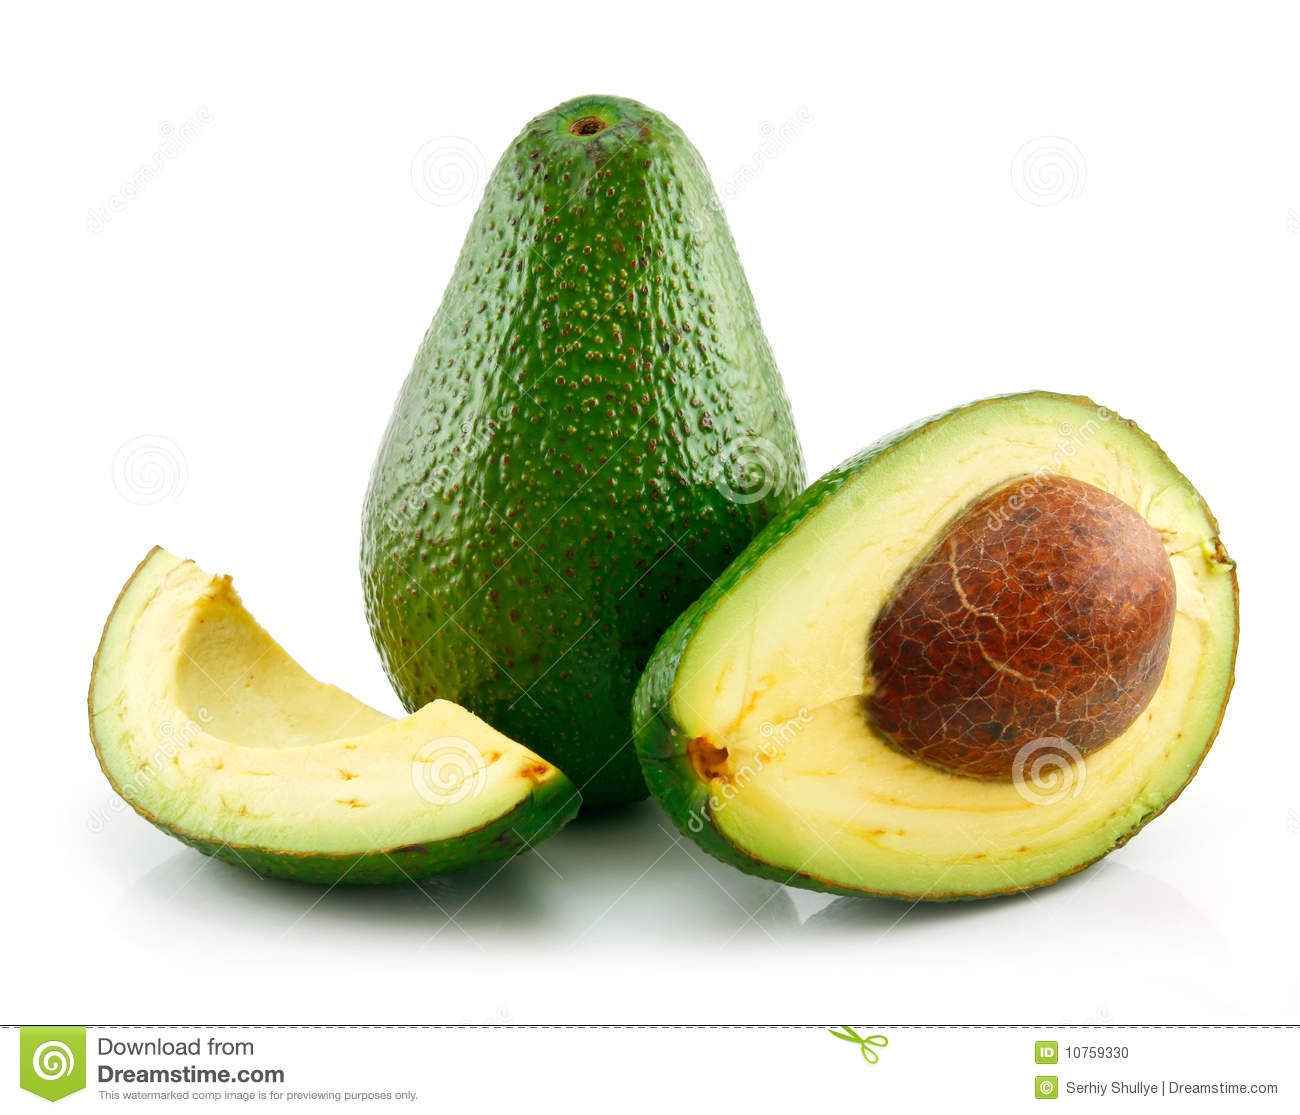 how to see if avocado is ripe